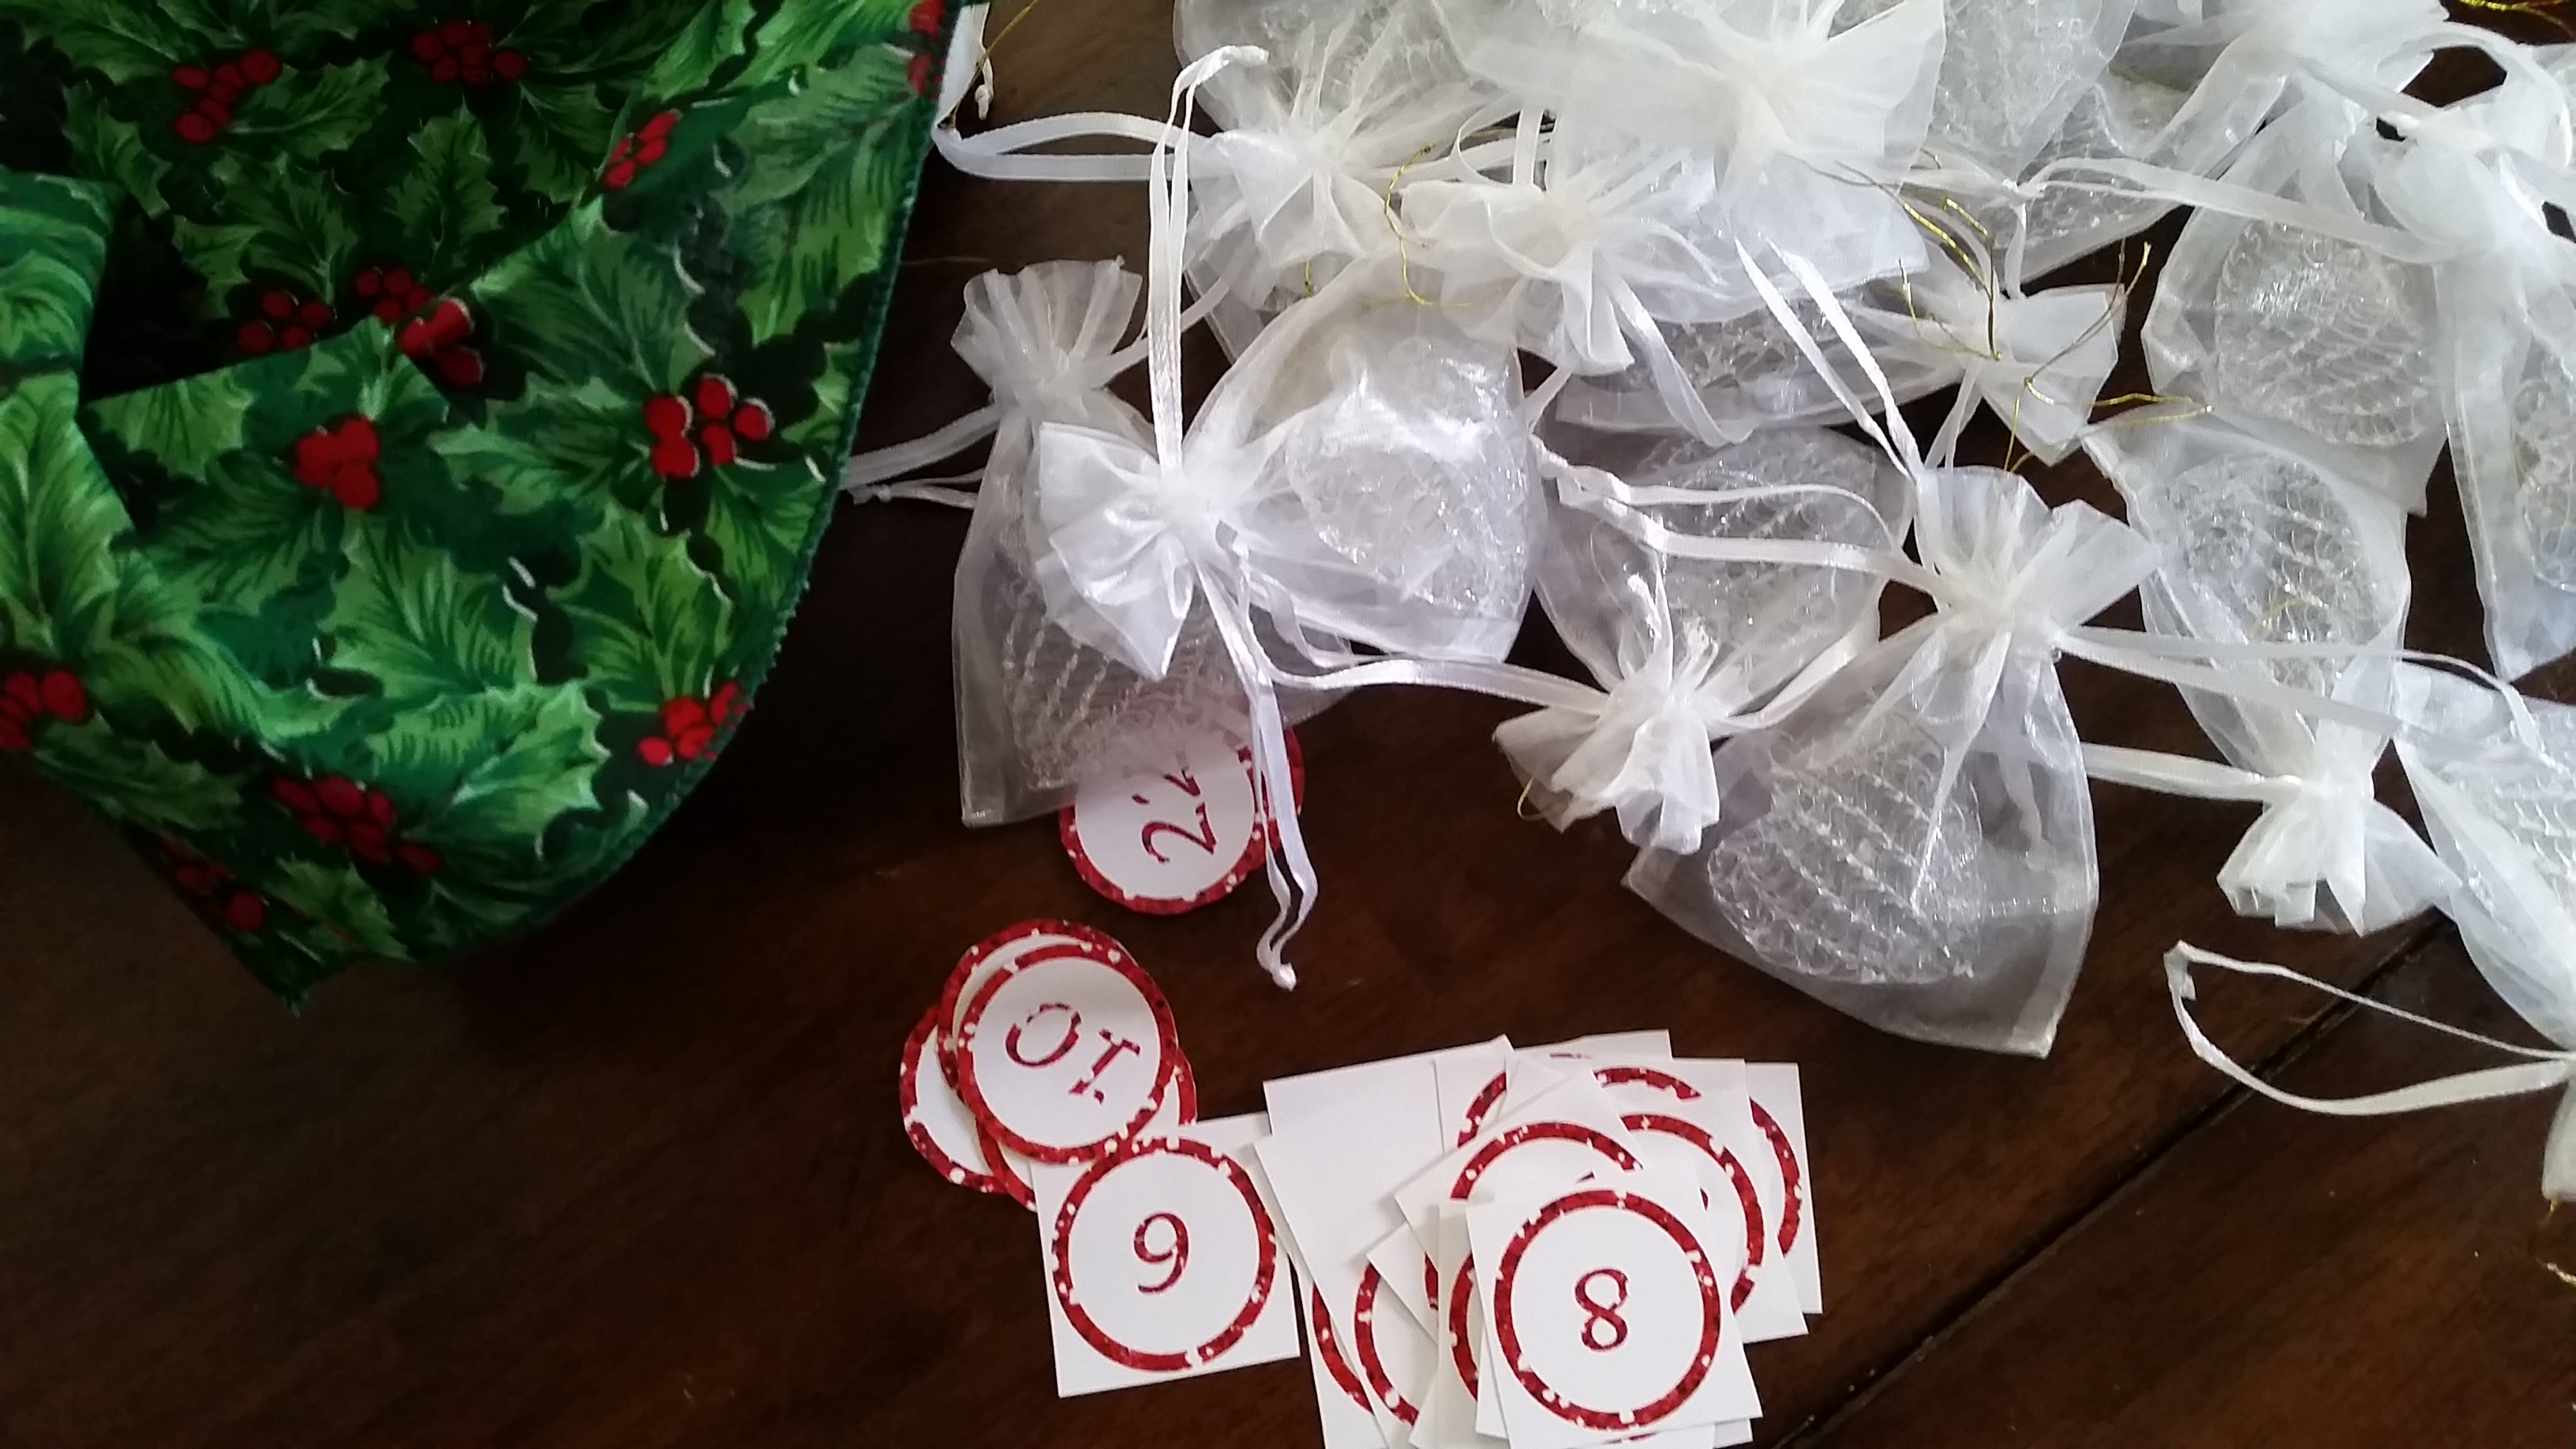 spun glass ornament in organza bag from Oriental Trading